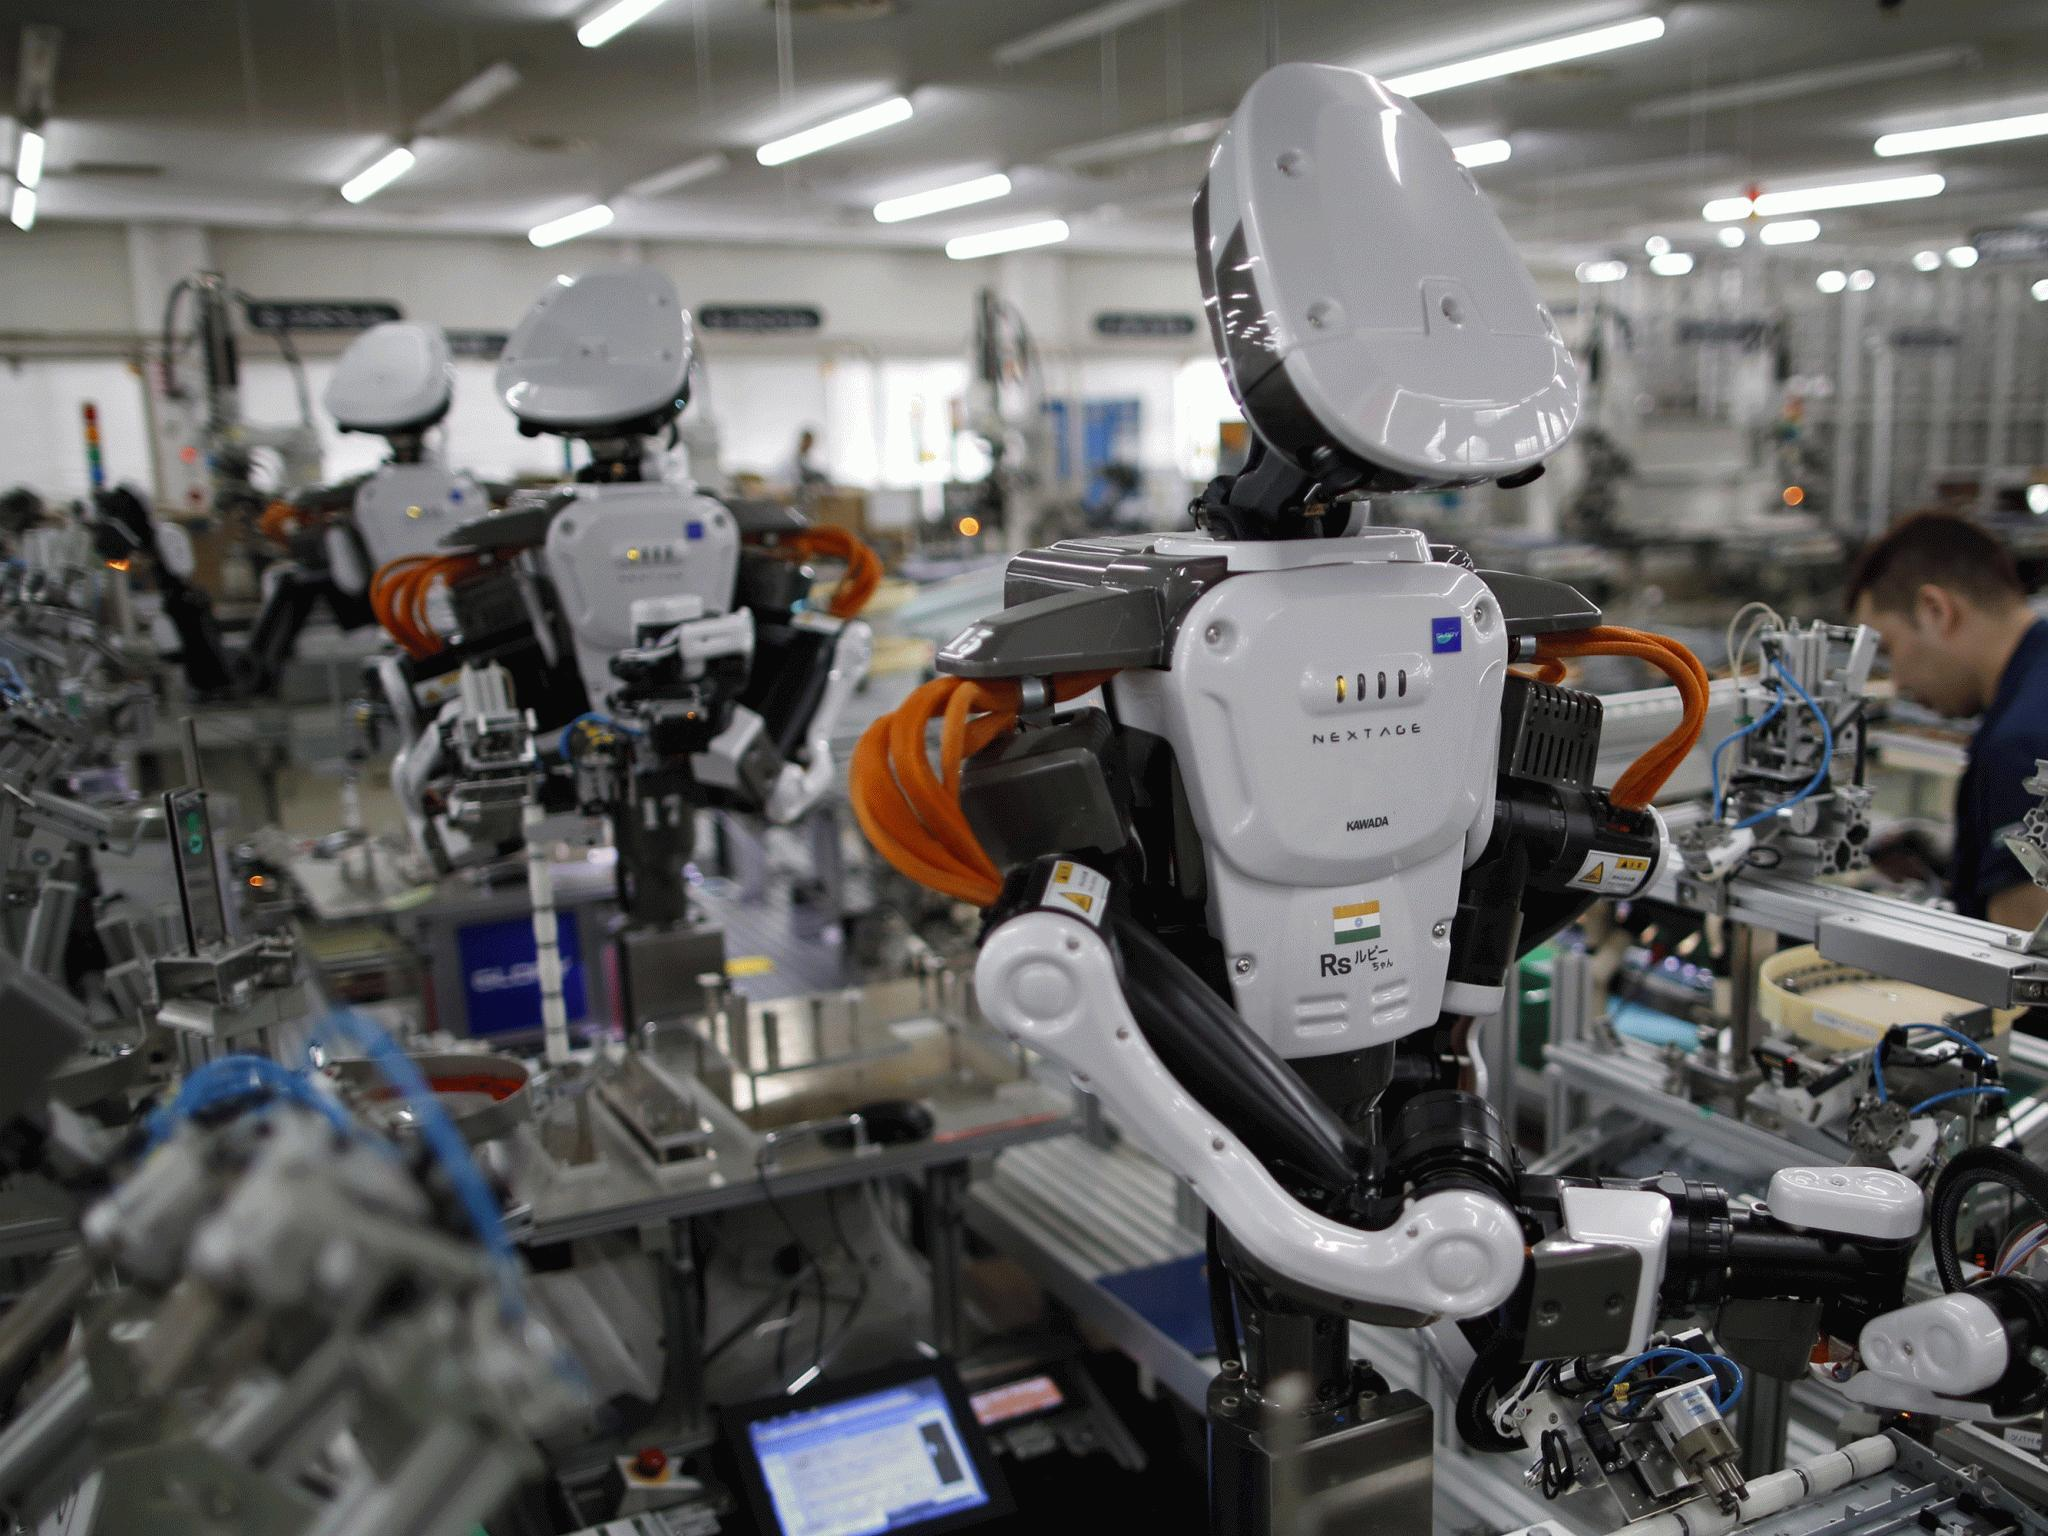 We should be pleased that robots are taking over some of our old jobs